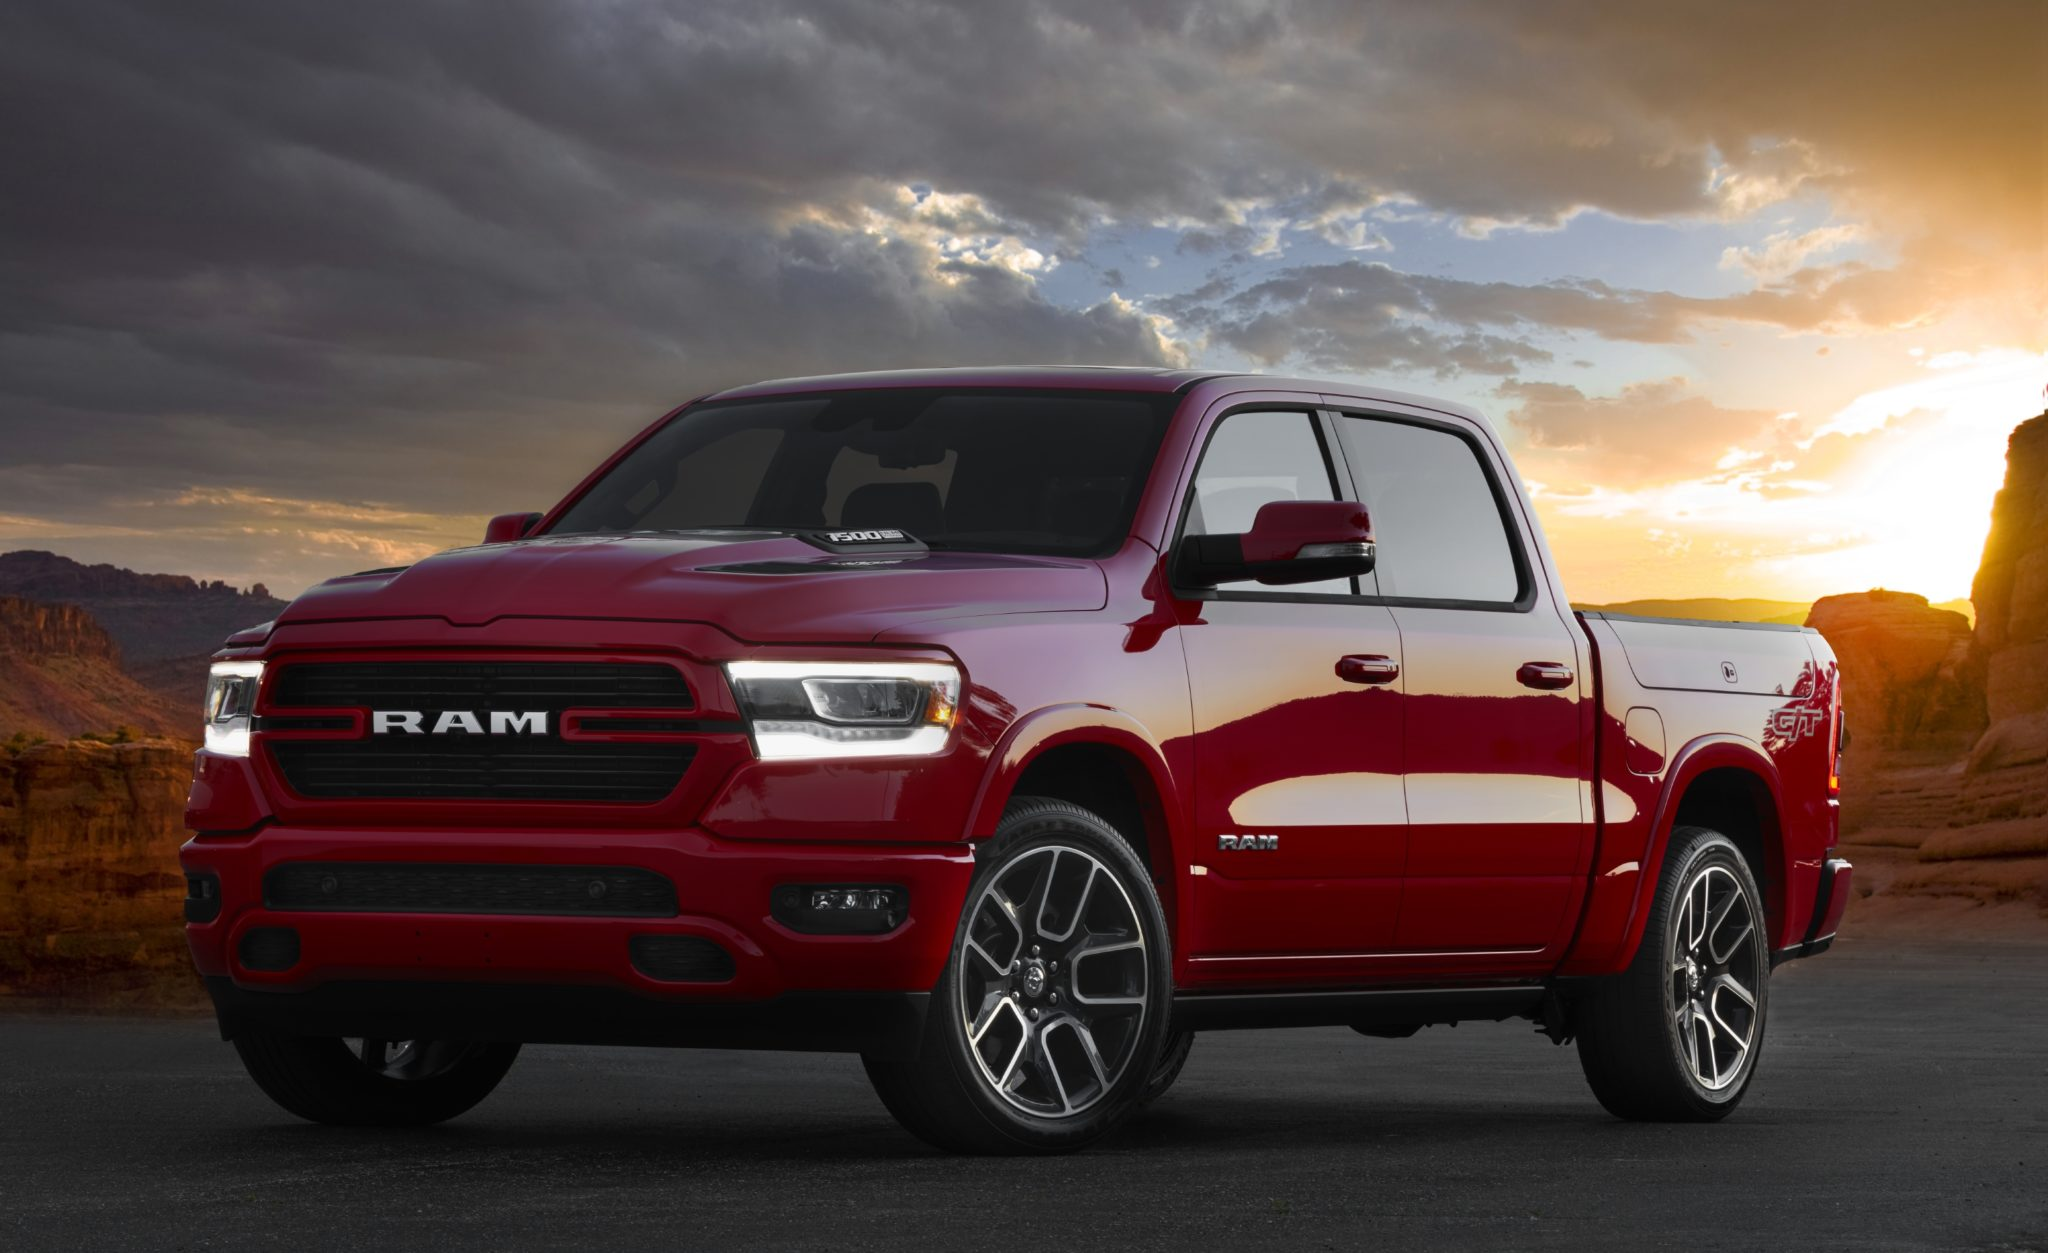 The new 2022 Ram pickup trucks expand the manufacturer's lineup.